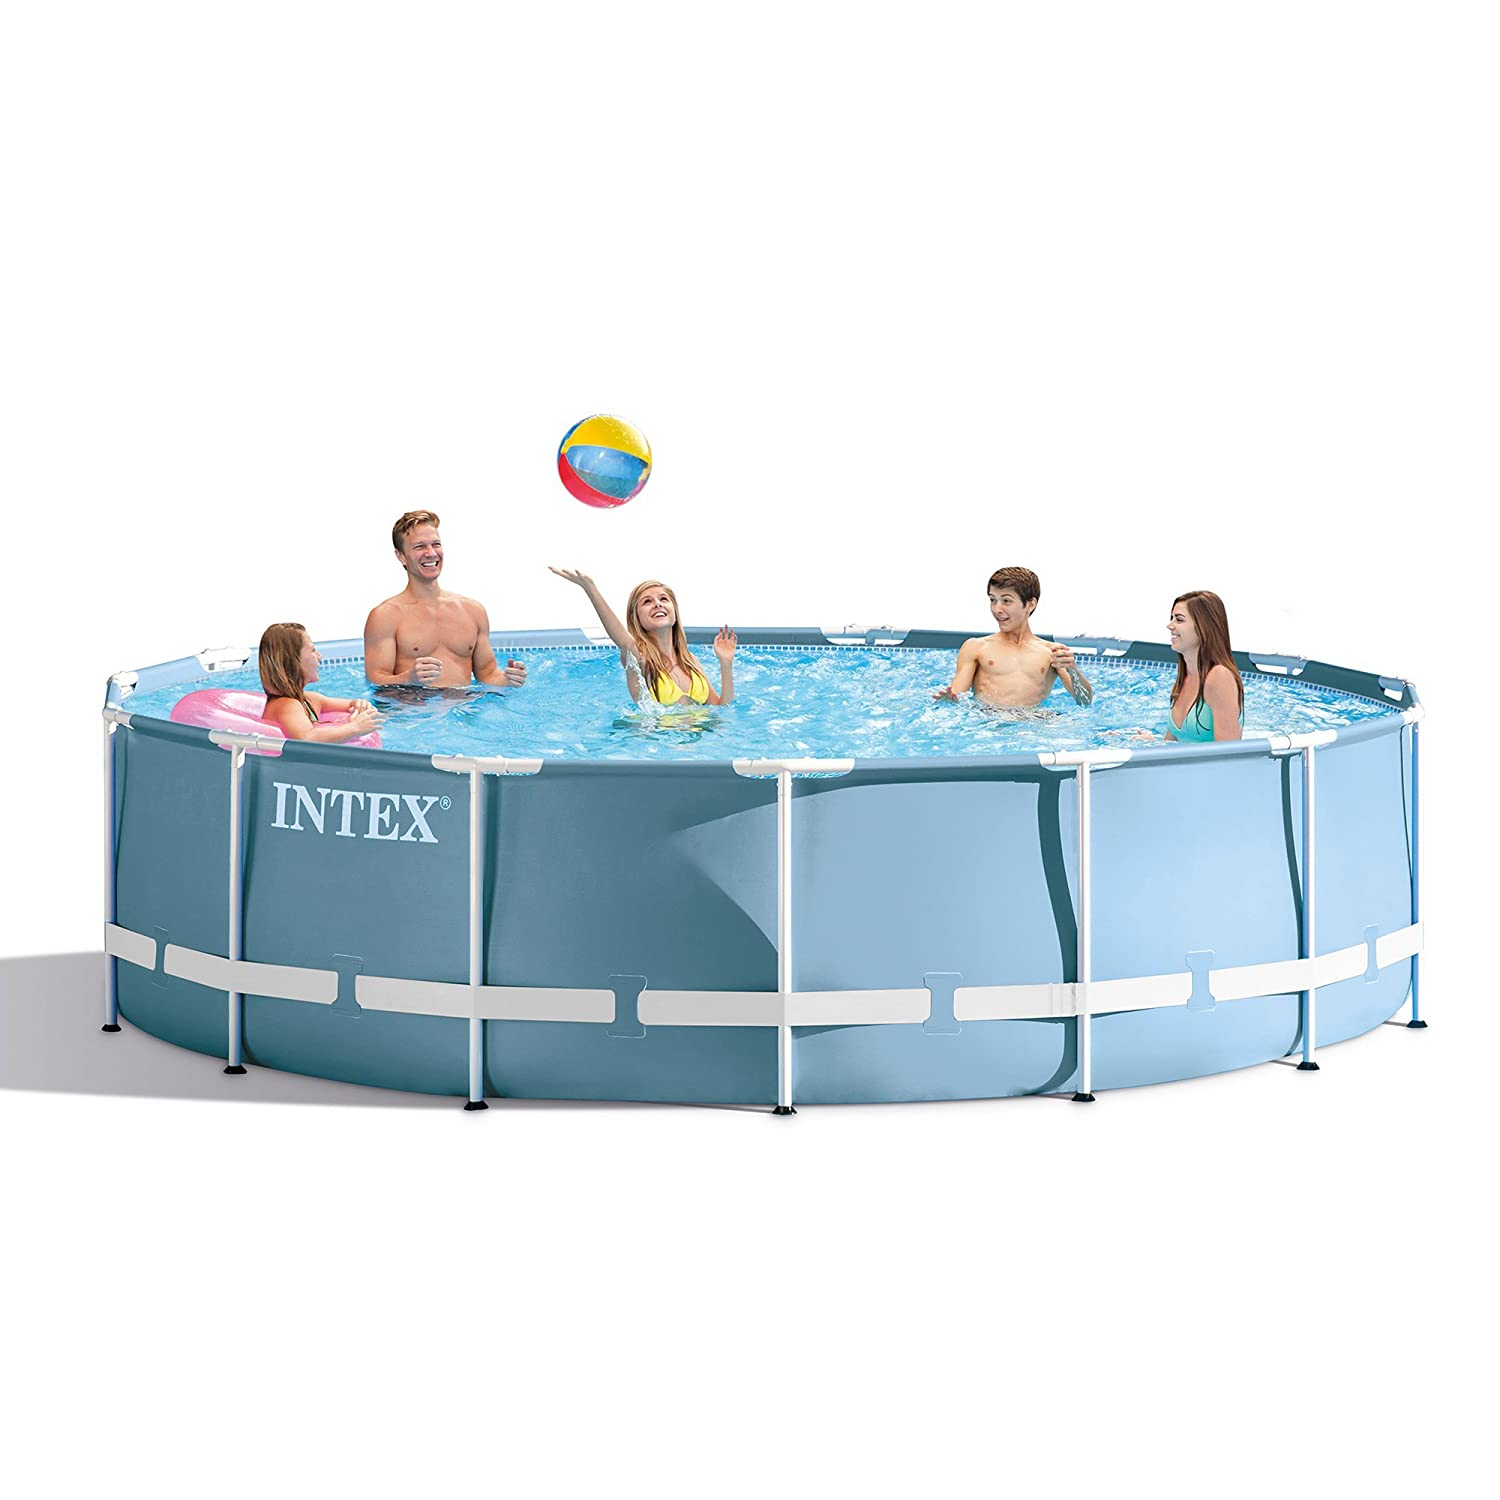 Amazon.com: Intex 15 Feet x 48 Inches Prism Frame Pool Set: Home ...